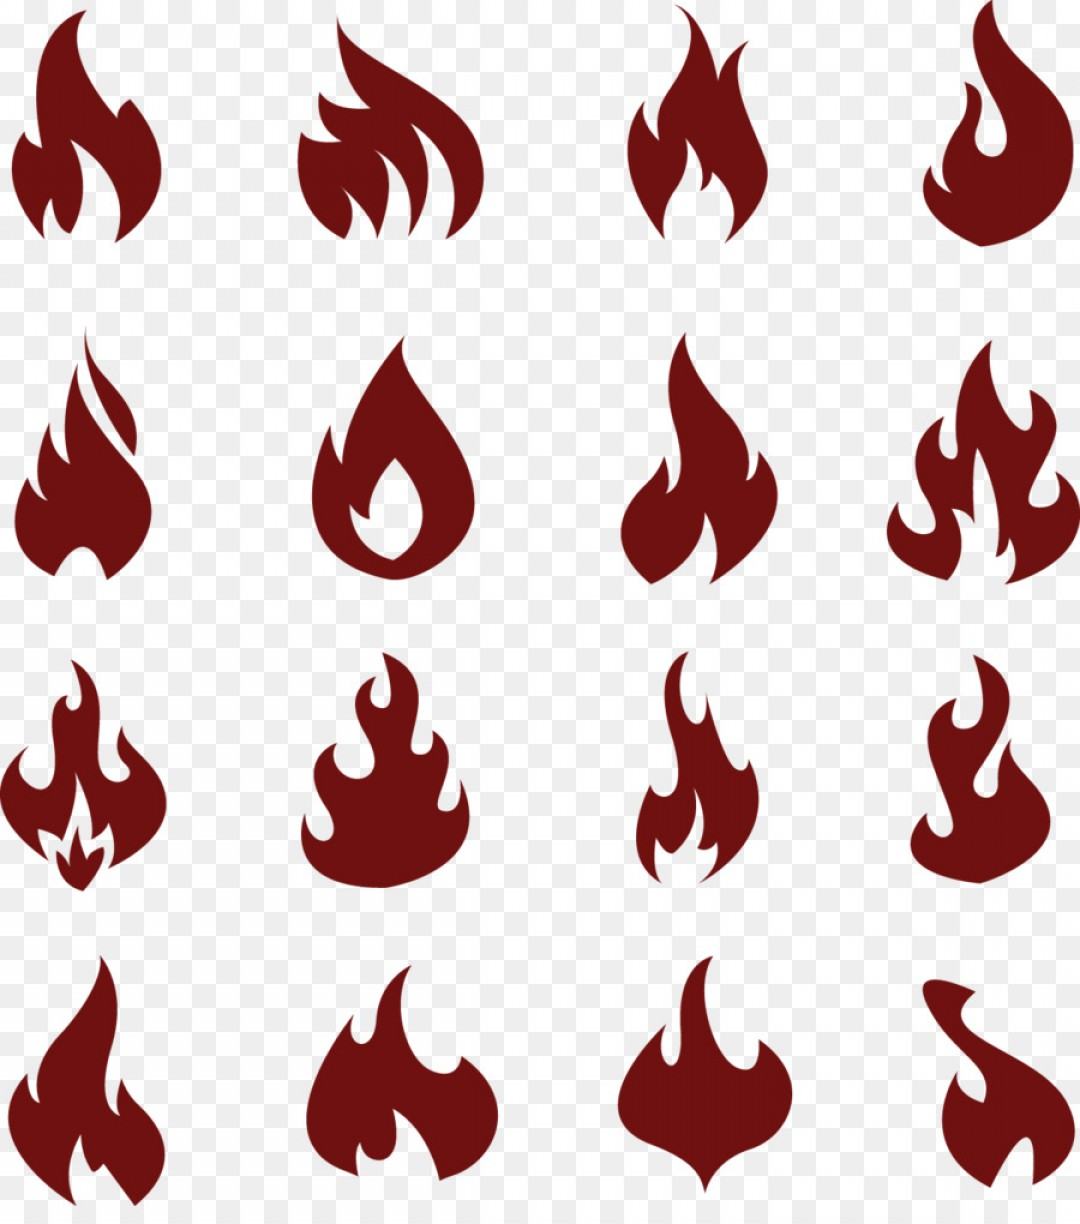 Fire Clip Art Vector: Png Flame Fire Clip Art Of The Flame Icon Vector Ma